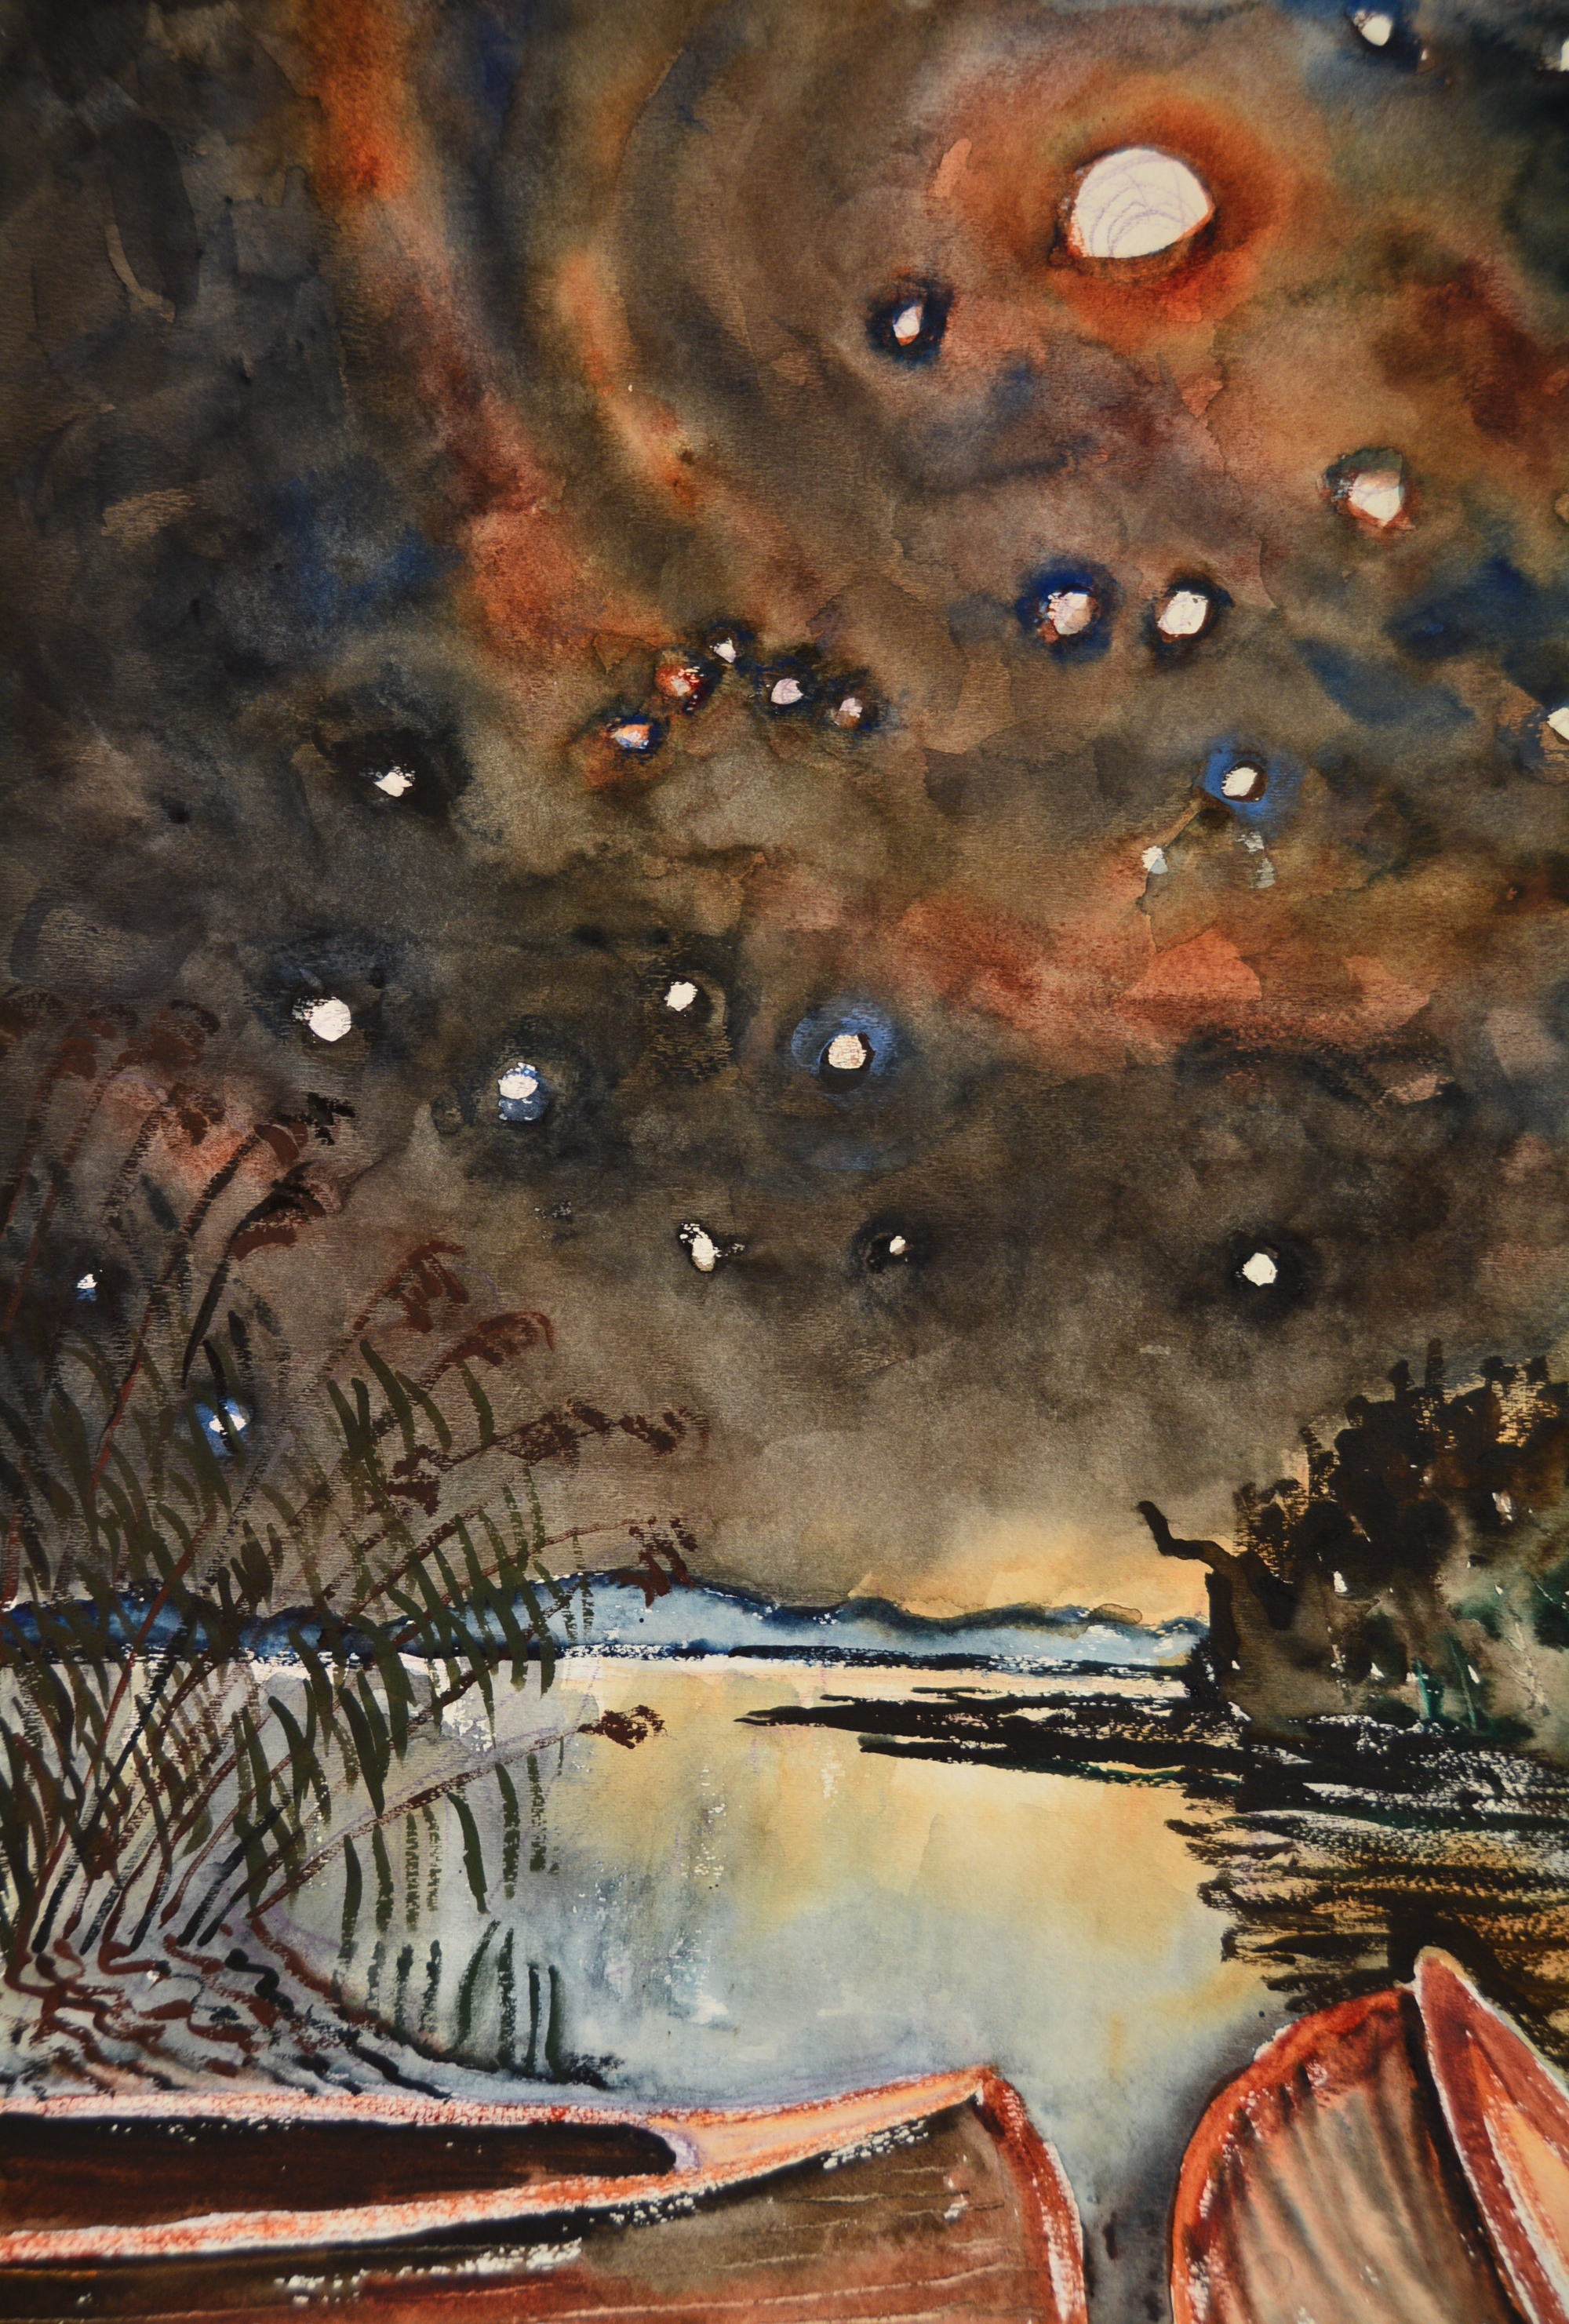 'Canis Major, Orion, Moon over South Pass' by John Ruskey, watercolor, 18×24. Image courtesy of the artist.